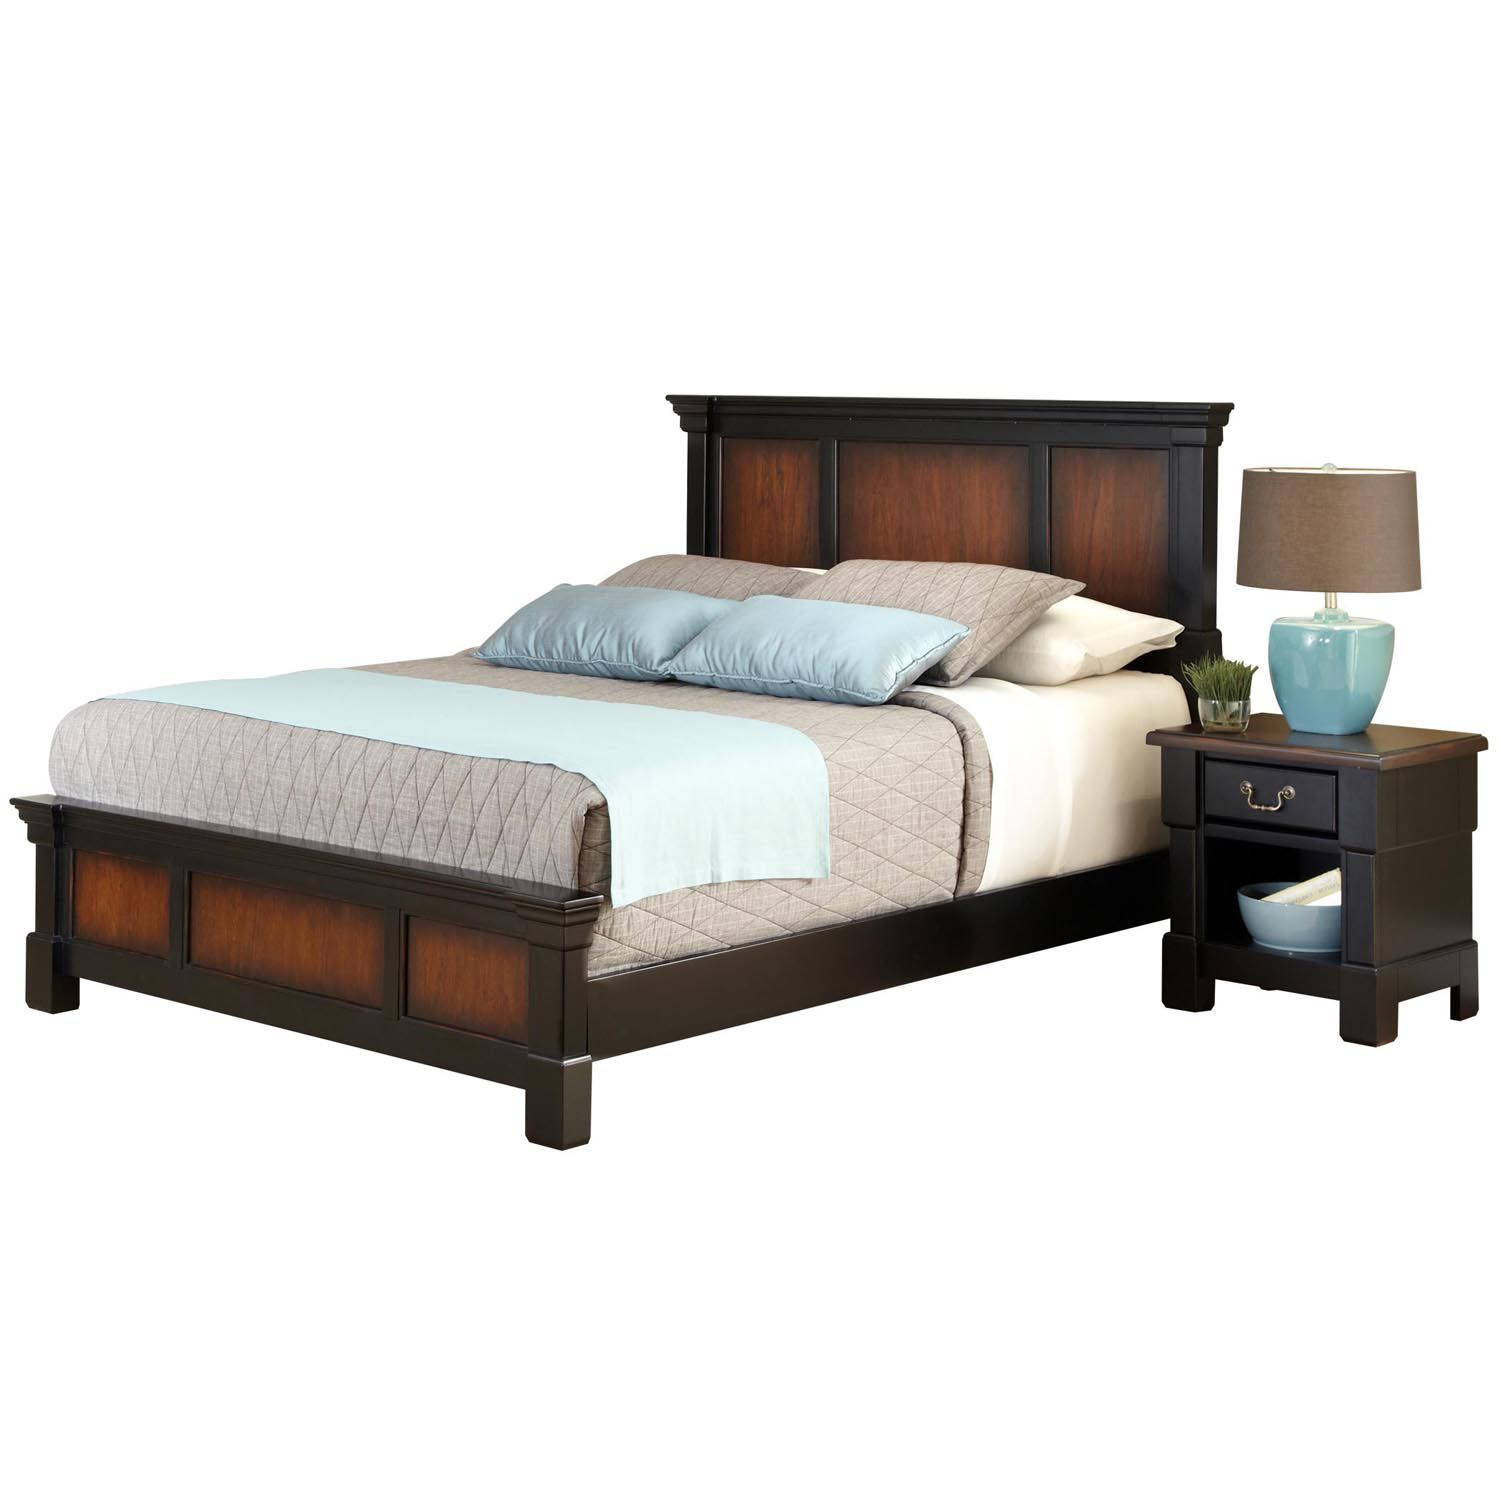 Home Styles Aspen 4 pc  Queen Headboard  Footboard  Frame and     Queen Headboard  Footboard  Frame and Nightstand Set